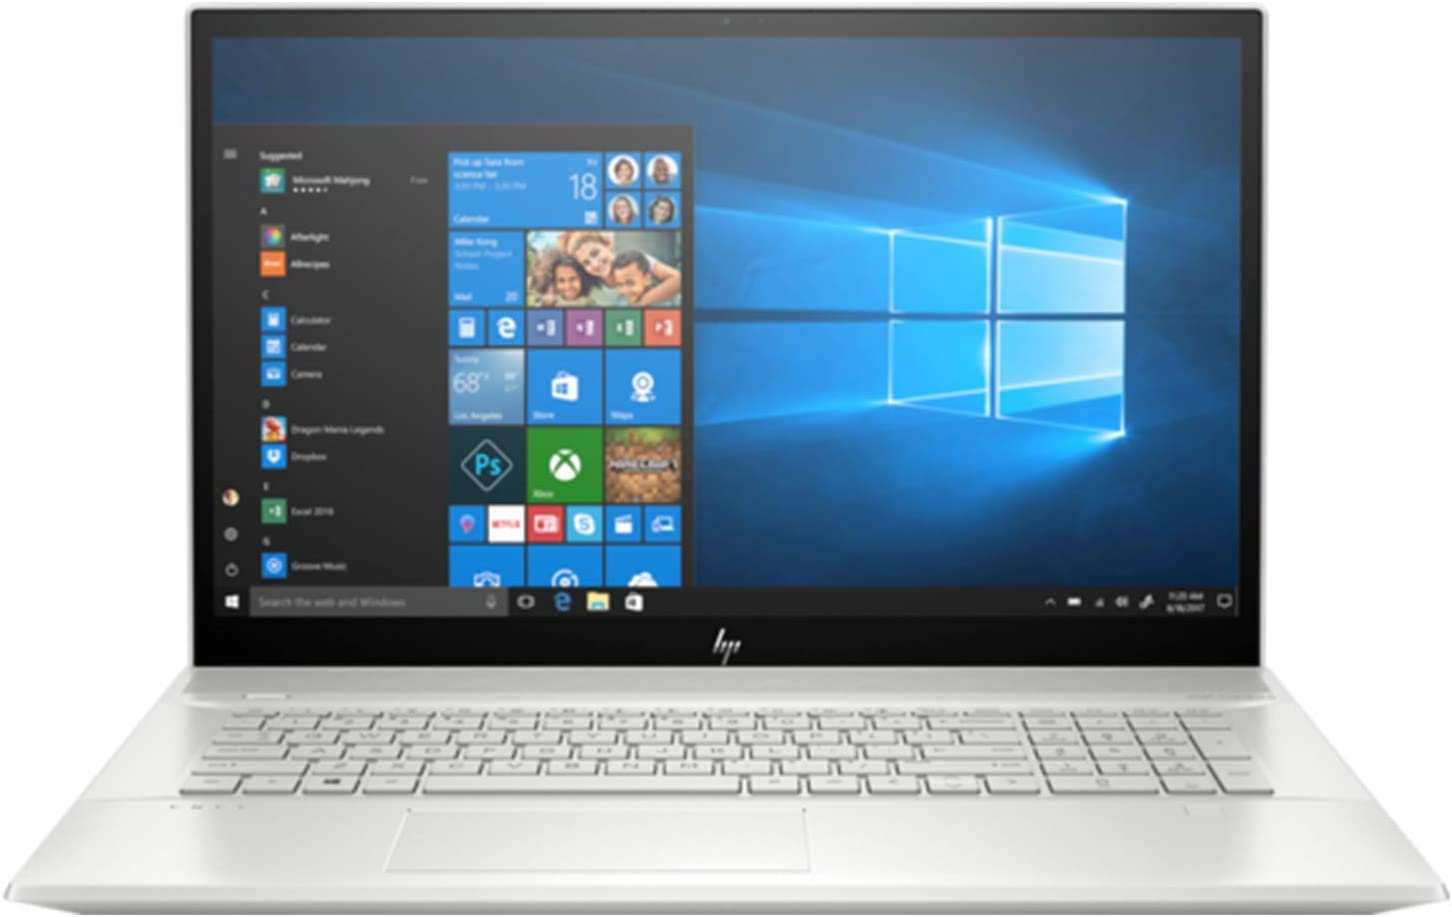 "Newest HP Envy 17t Touch Quad Core with 10th Gen.Intel i7-10510U, NVIDIA GeForce MX250 4GB GDDR5, 17.3"" WLED, Windows 10 PRO Upgrade Bang & Olufsen Laptop PC (16GB DDR4, 1TB HDD+256GB SSD)"